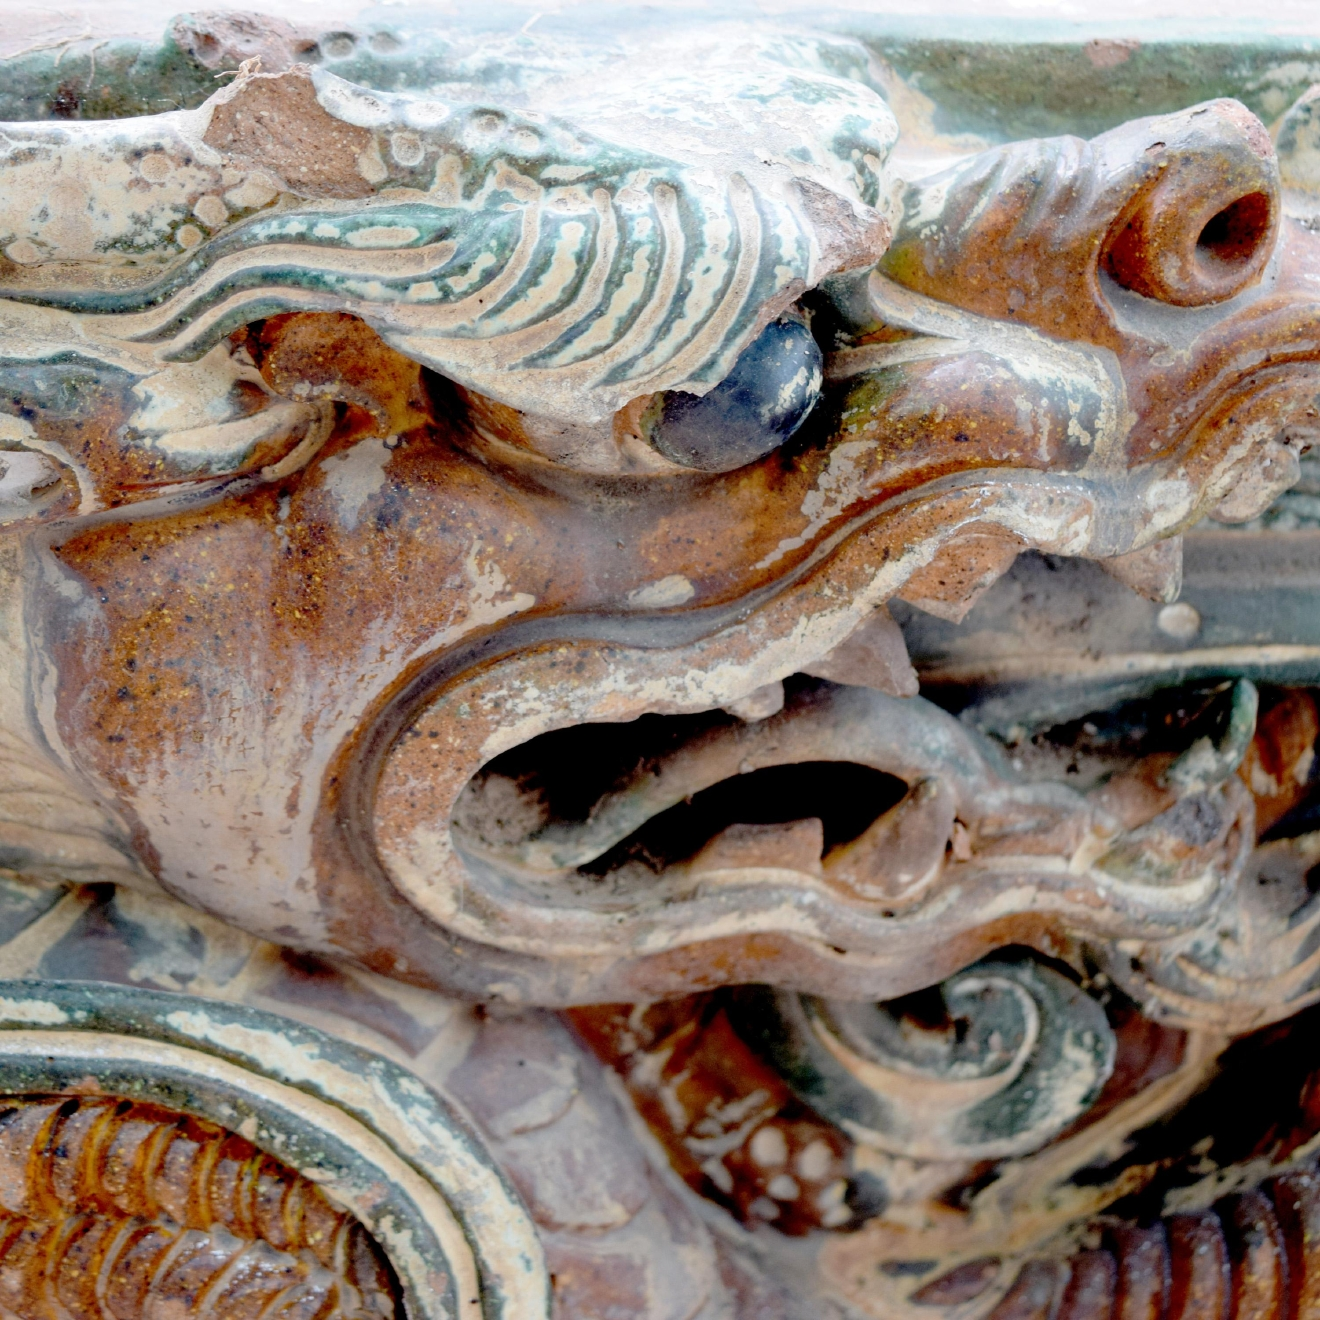 Chinese Serpentine Dragon Architectural Elements or Roof Tiles / Image courtesy of Everything But The House // Published: 10.15.16